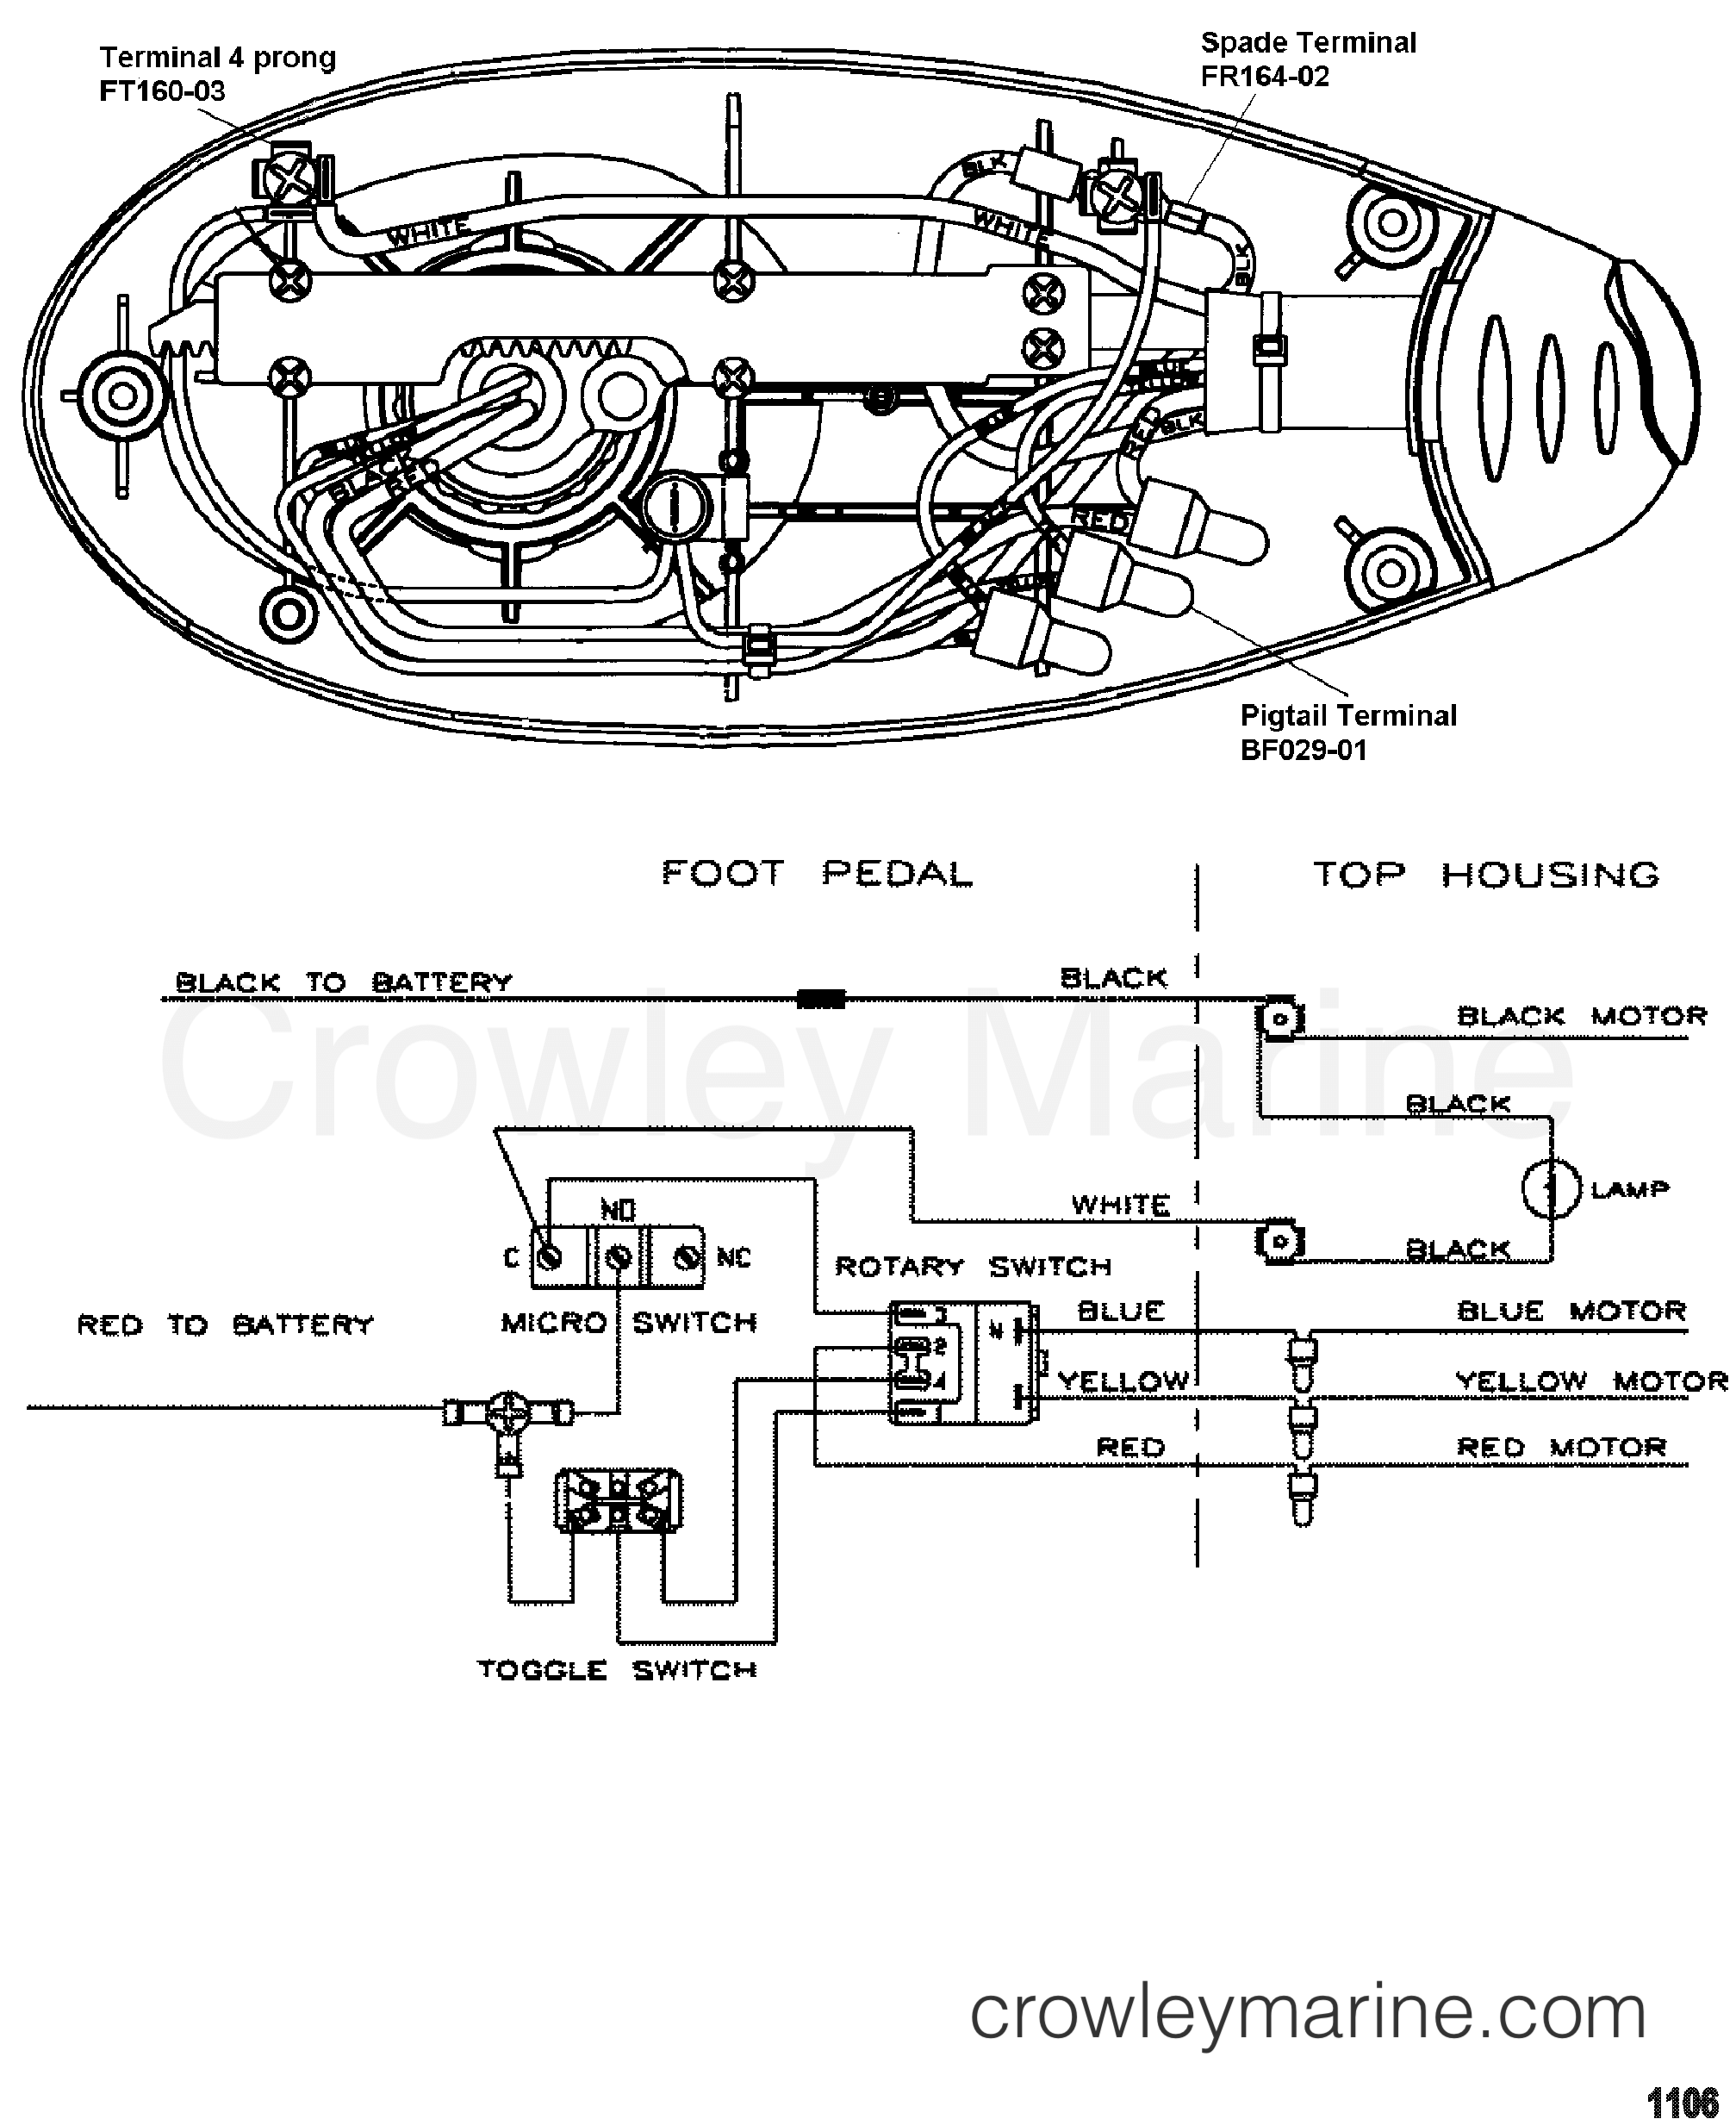 2000 MotorGuide 12V [MOTORGUIDE] - 9EF54VFW1 WIRE DIAGRAM(MODEL EF67) (24 VOLT) section